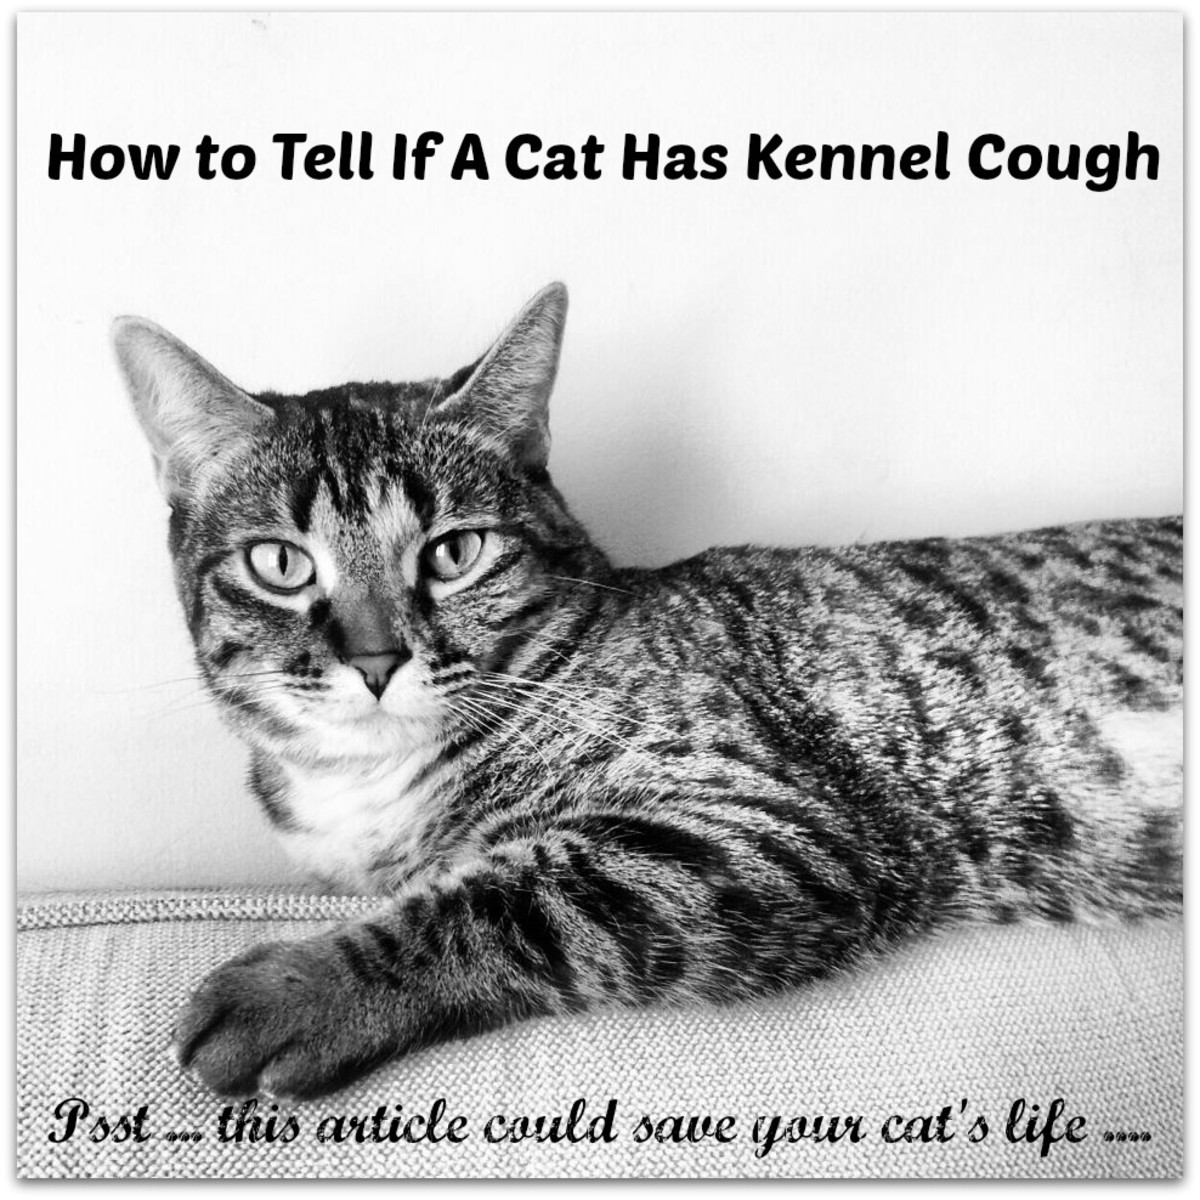 It is very important to catch the signs of kennel cough in kitties.